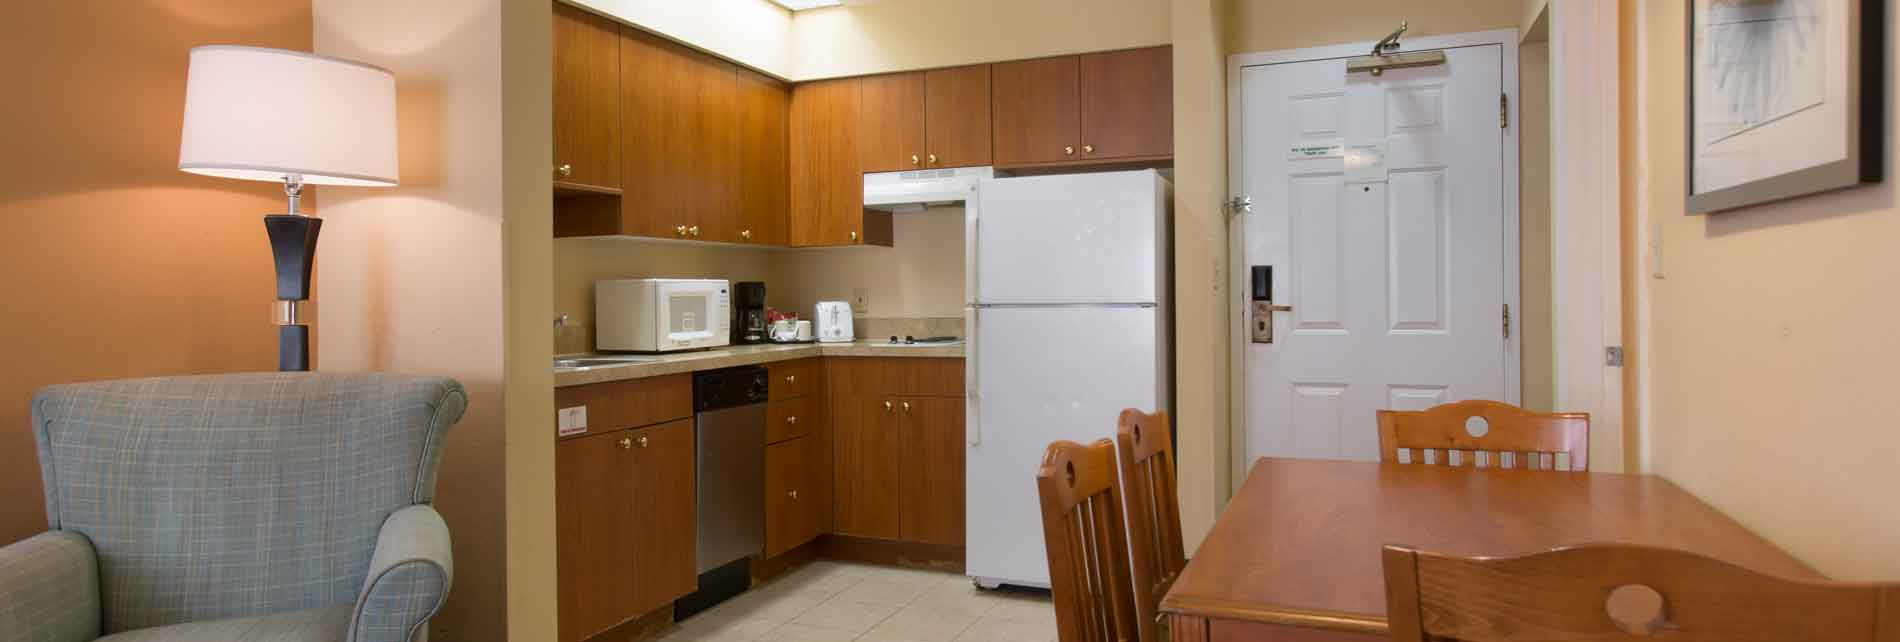 hotels with full kitchens in orlando florida ikea kitchen buffet hotel suites staysky i drive view of our